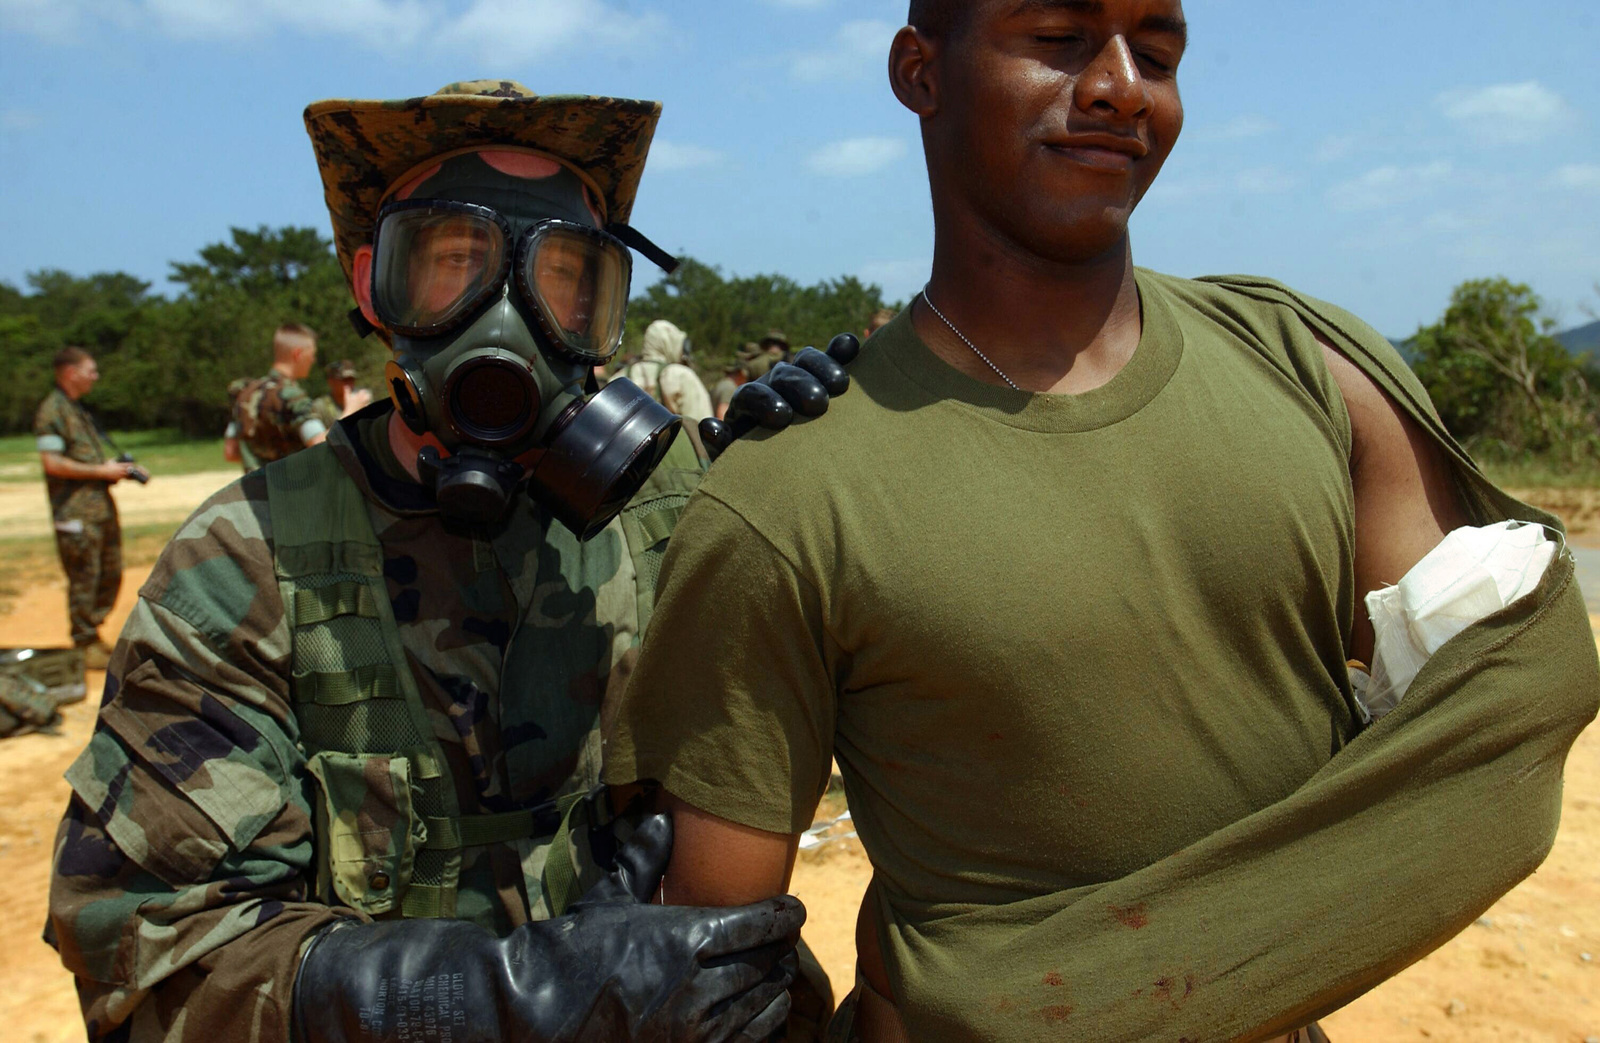 US Navy (USN) Hospital Apprentice (HA) Ian Stockwell (wearing gas mask), escorts US Marine Corps (USMC) Private First Class (PFC) Keith Taylor, 3rd Medical Battalion, to the triage area after treating him for an army injury, during a Nuclear, Biological, Chemical (NBC) mass casualty field training exercise, held at the Central Training Area, Okinawa, Japan